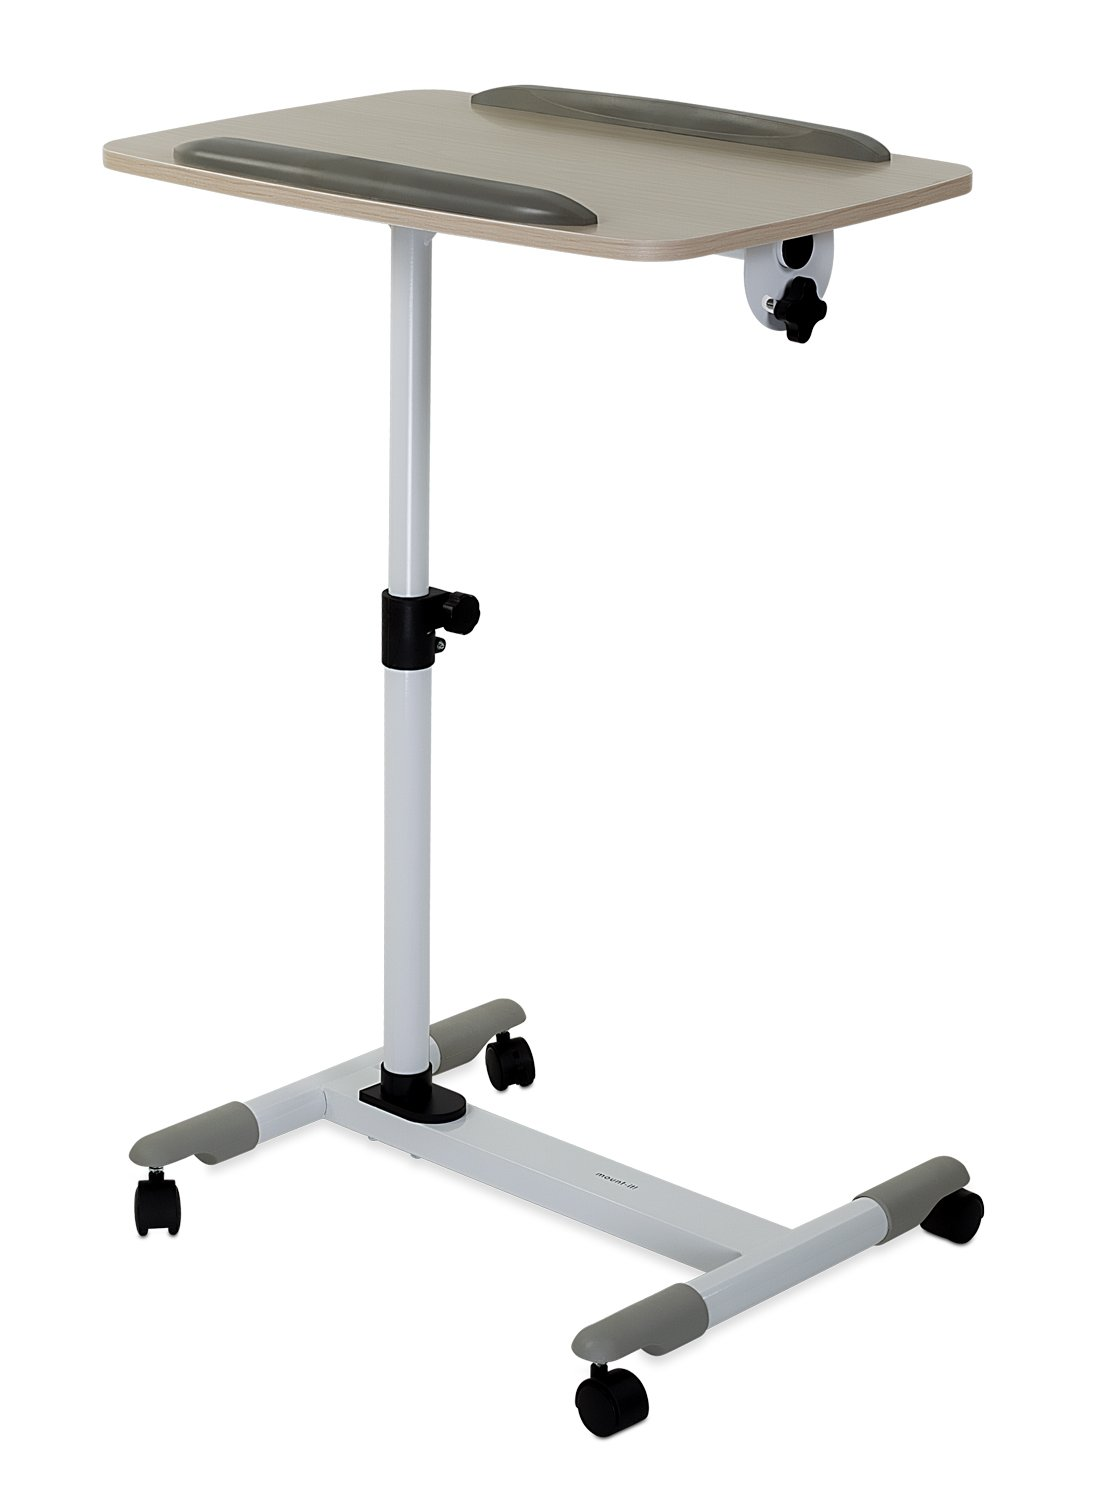 Mount-It! Mobile Projector and Laptop Stand Cart, Height Tilt Angle Adjustable Laptop and Projector Presentation Cart Trolley (MI-7943)